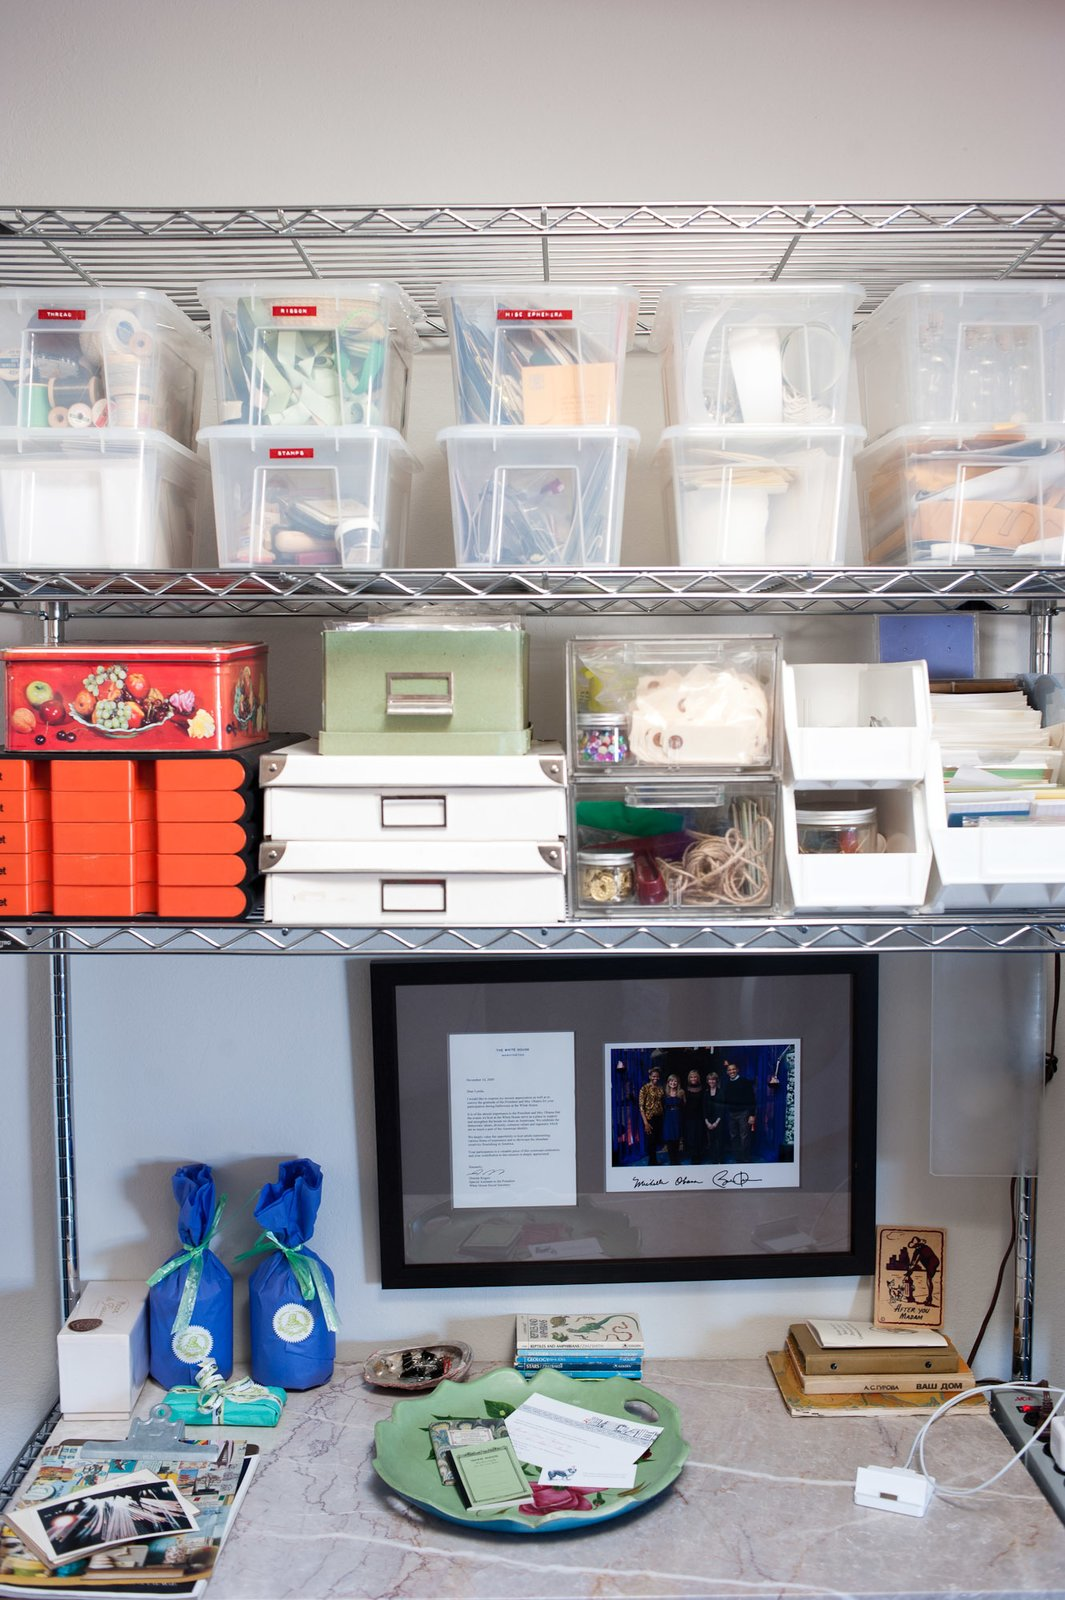 Lynda's knick knacks and crafty supplies are kept in the kitchen's metal shelving system, which came with the couple from their previous apartment. Tagged: Storage Room and Shelves Storage Type.  Photo 14 of 19 in Storage Savvy Renovation in Emeryville